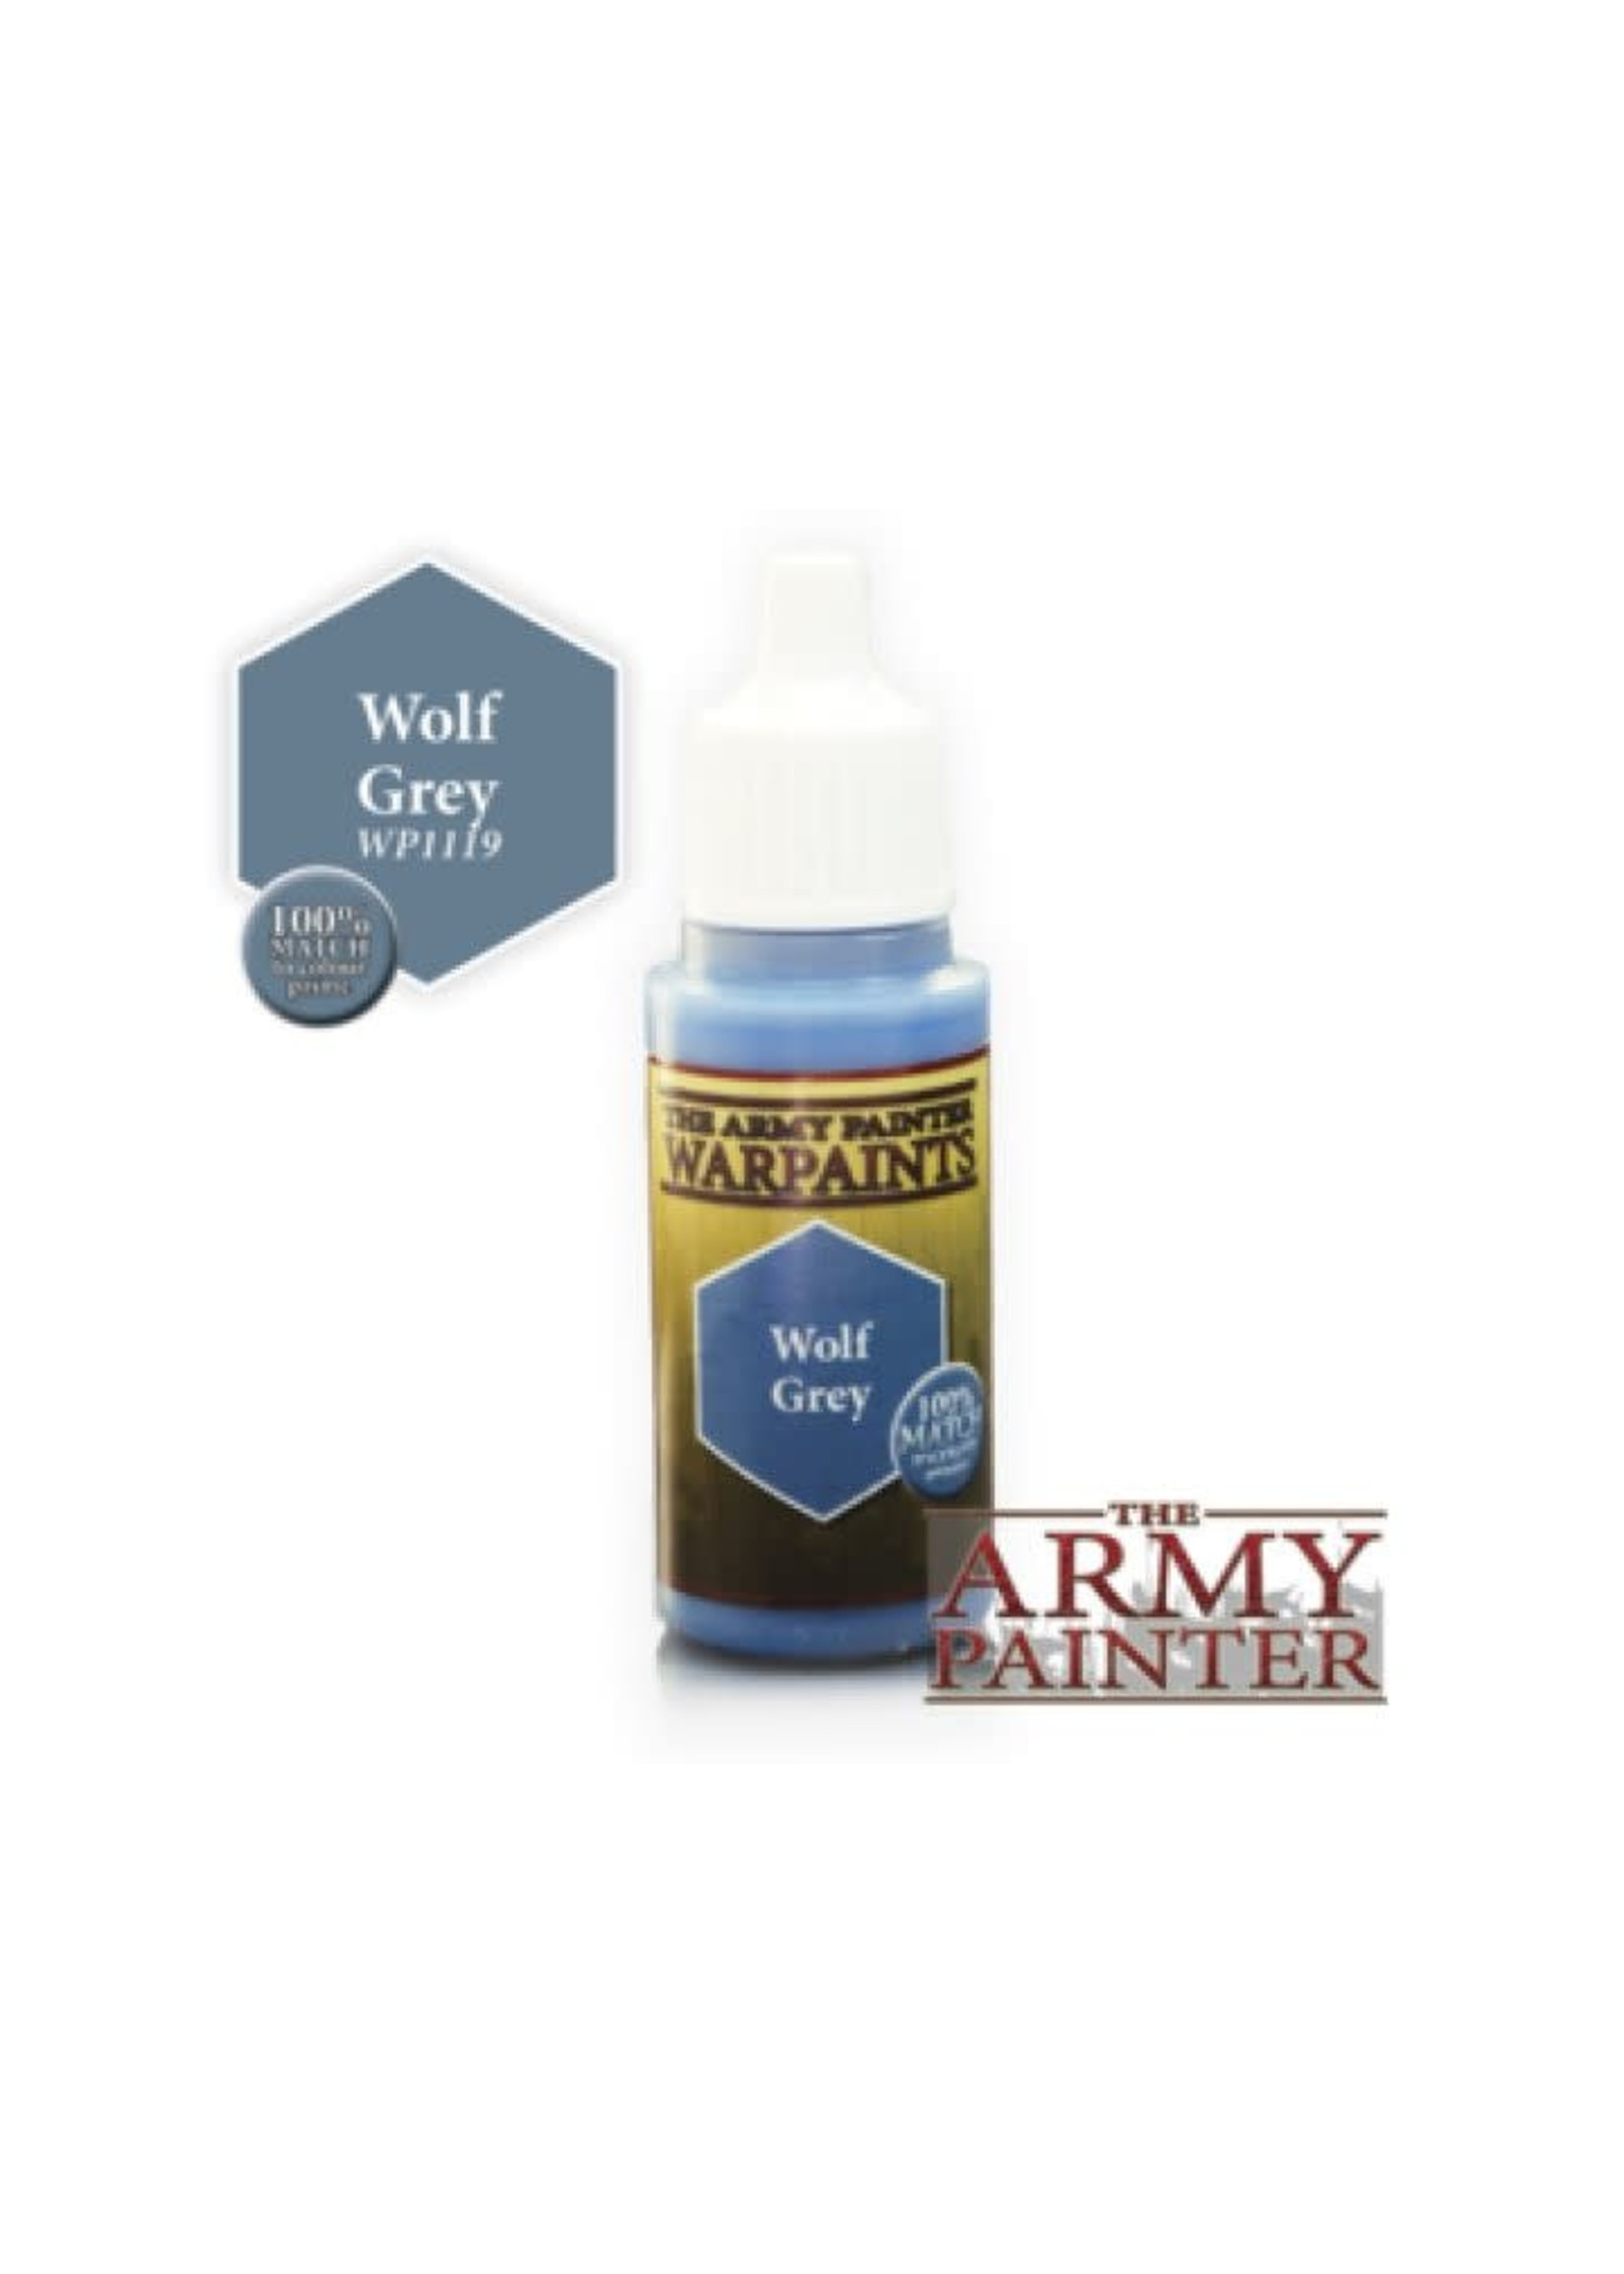 Army Painter Warpaints - Wolf Grey